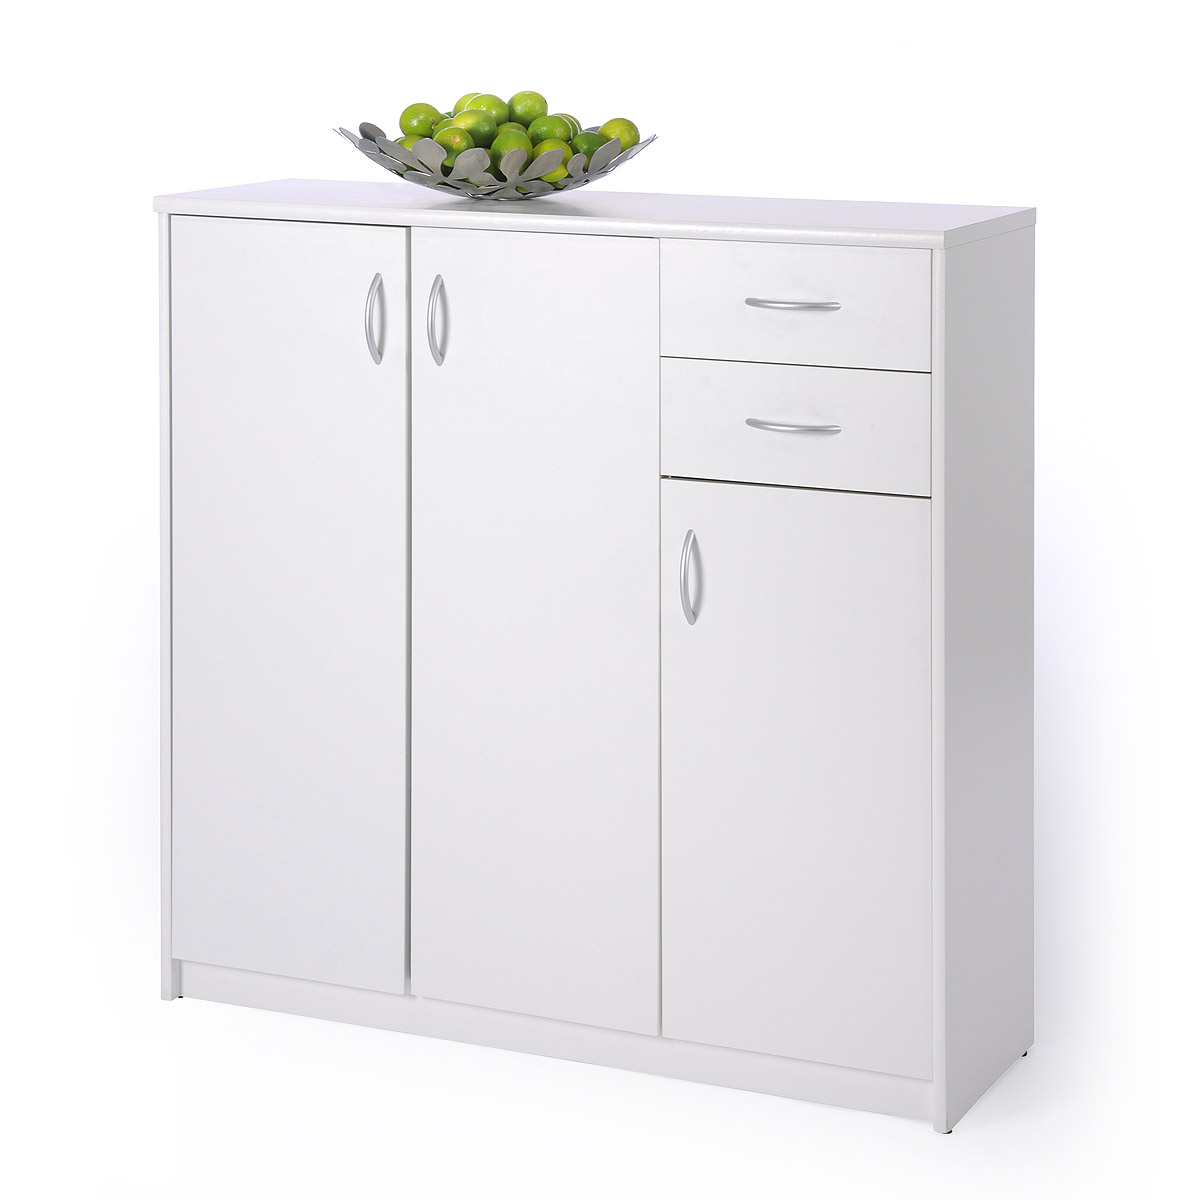 Ikea Küche Highboard Ikea Highboard Ikea Sideboard Highboard Schrank Regal